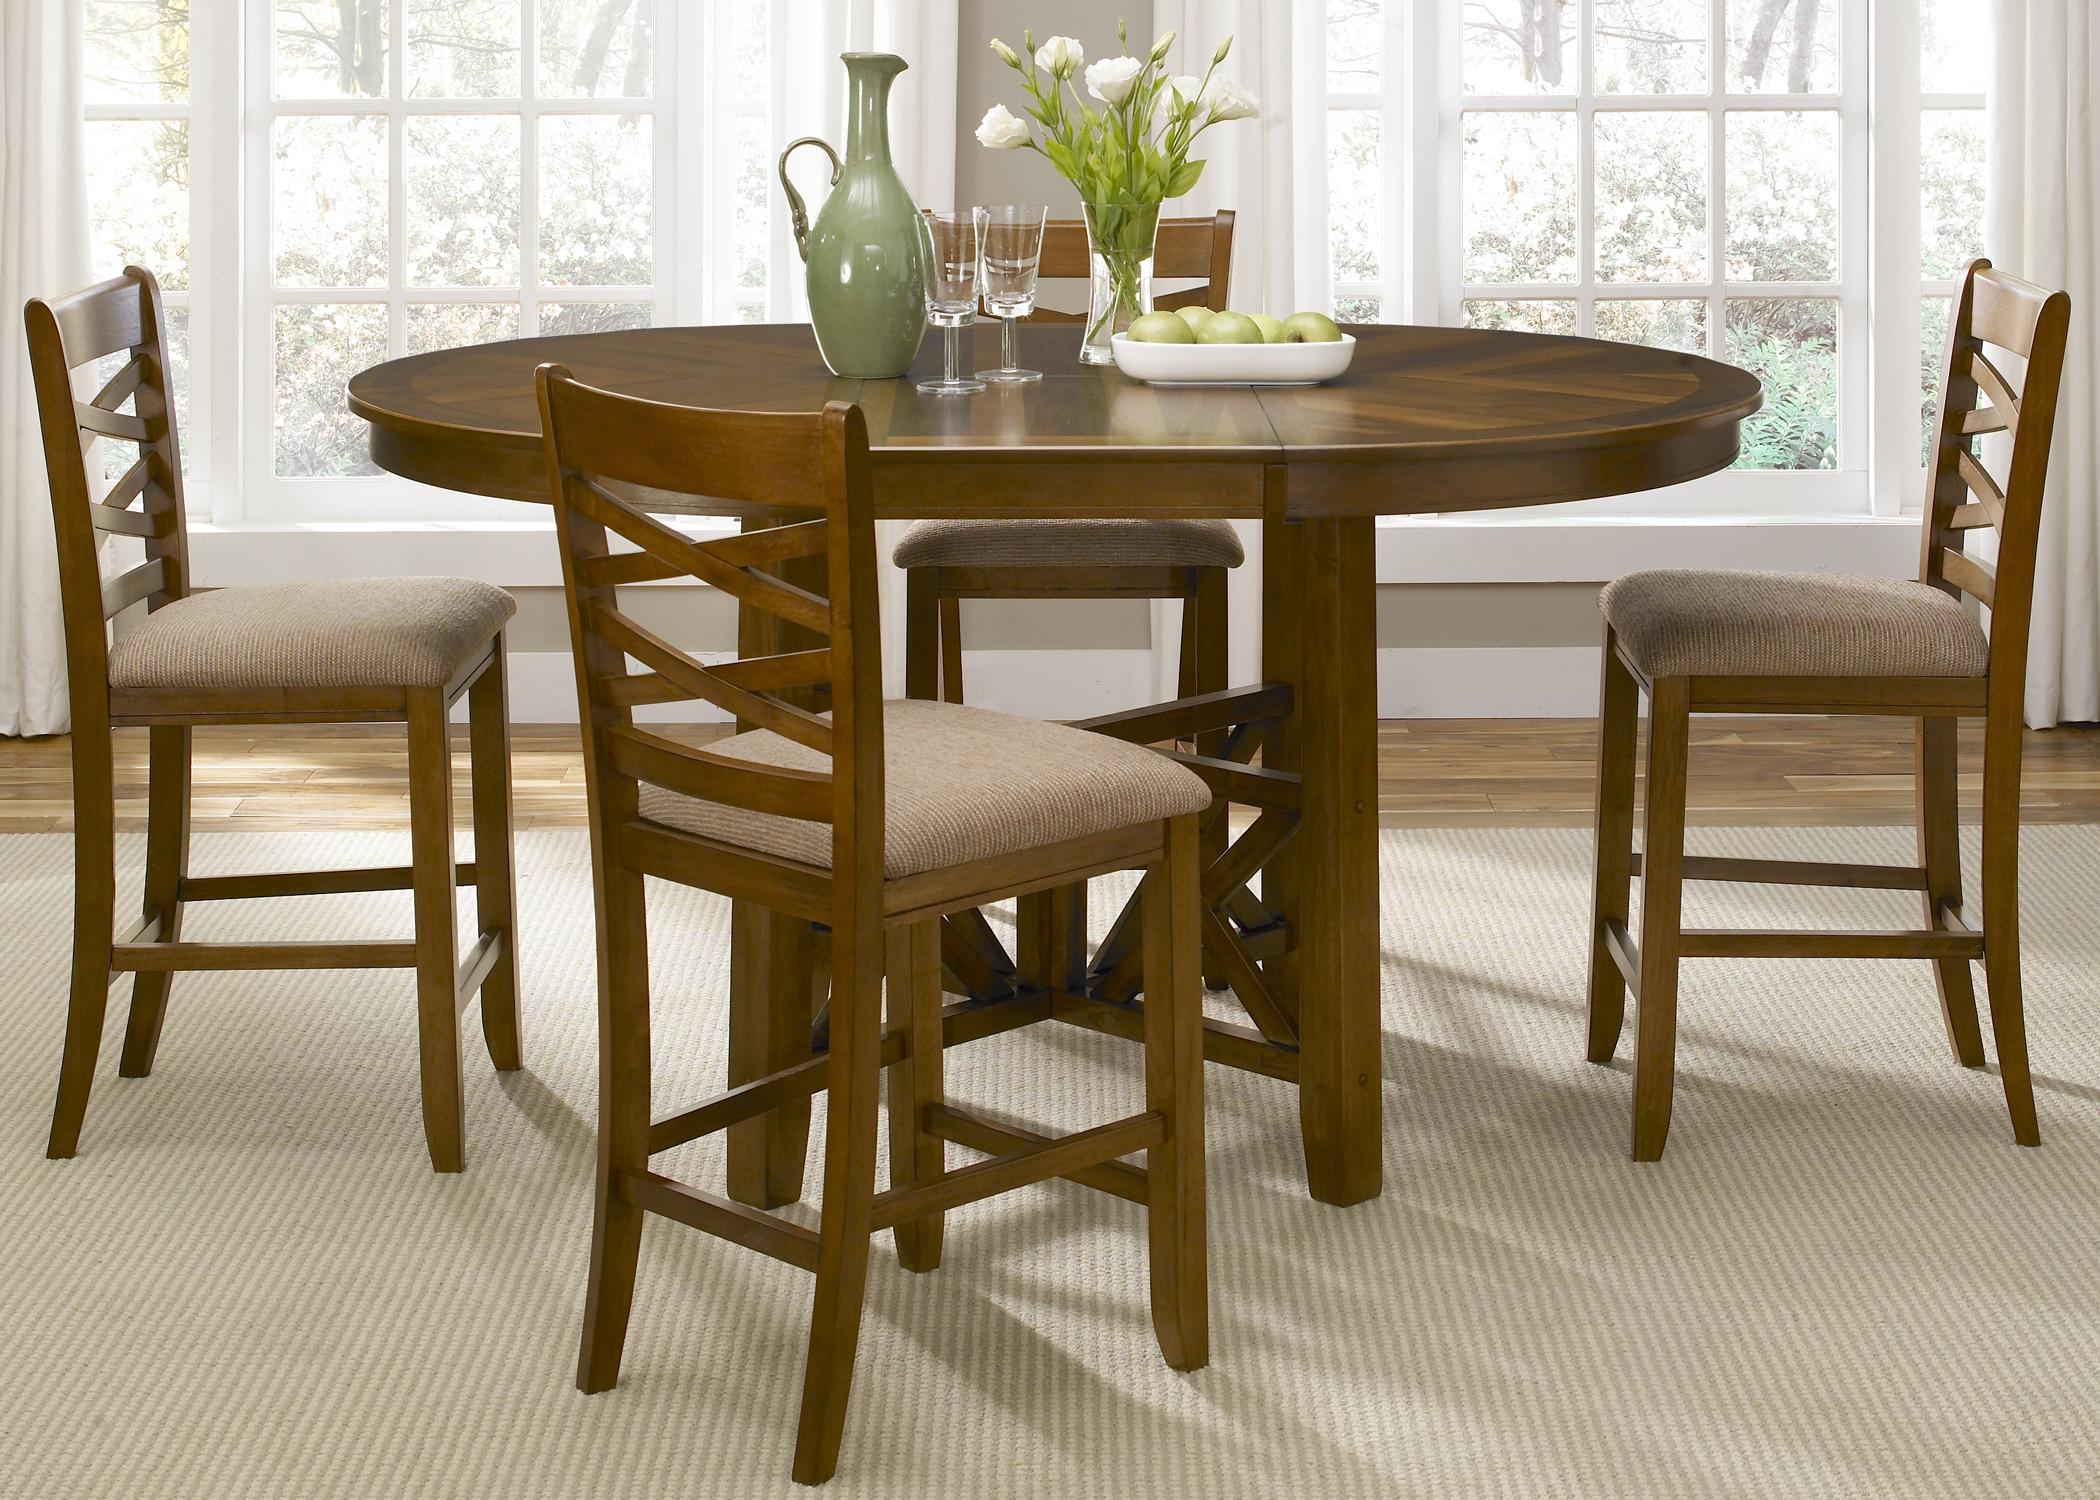 bistro kitchen table Liberty Furniture Bistro Rectangular Trestle Dining Table Wayside Furniture Dining Room Table